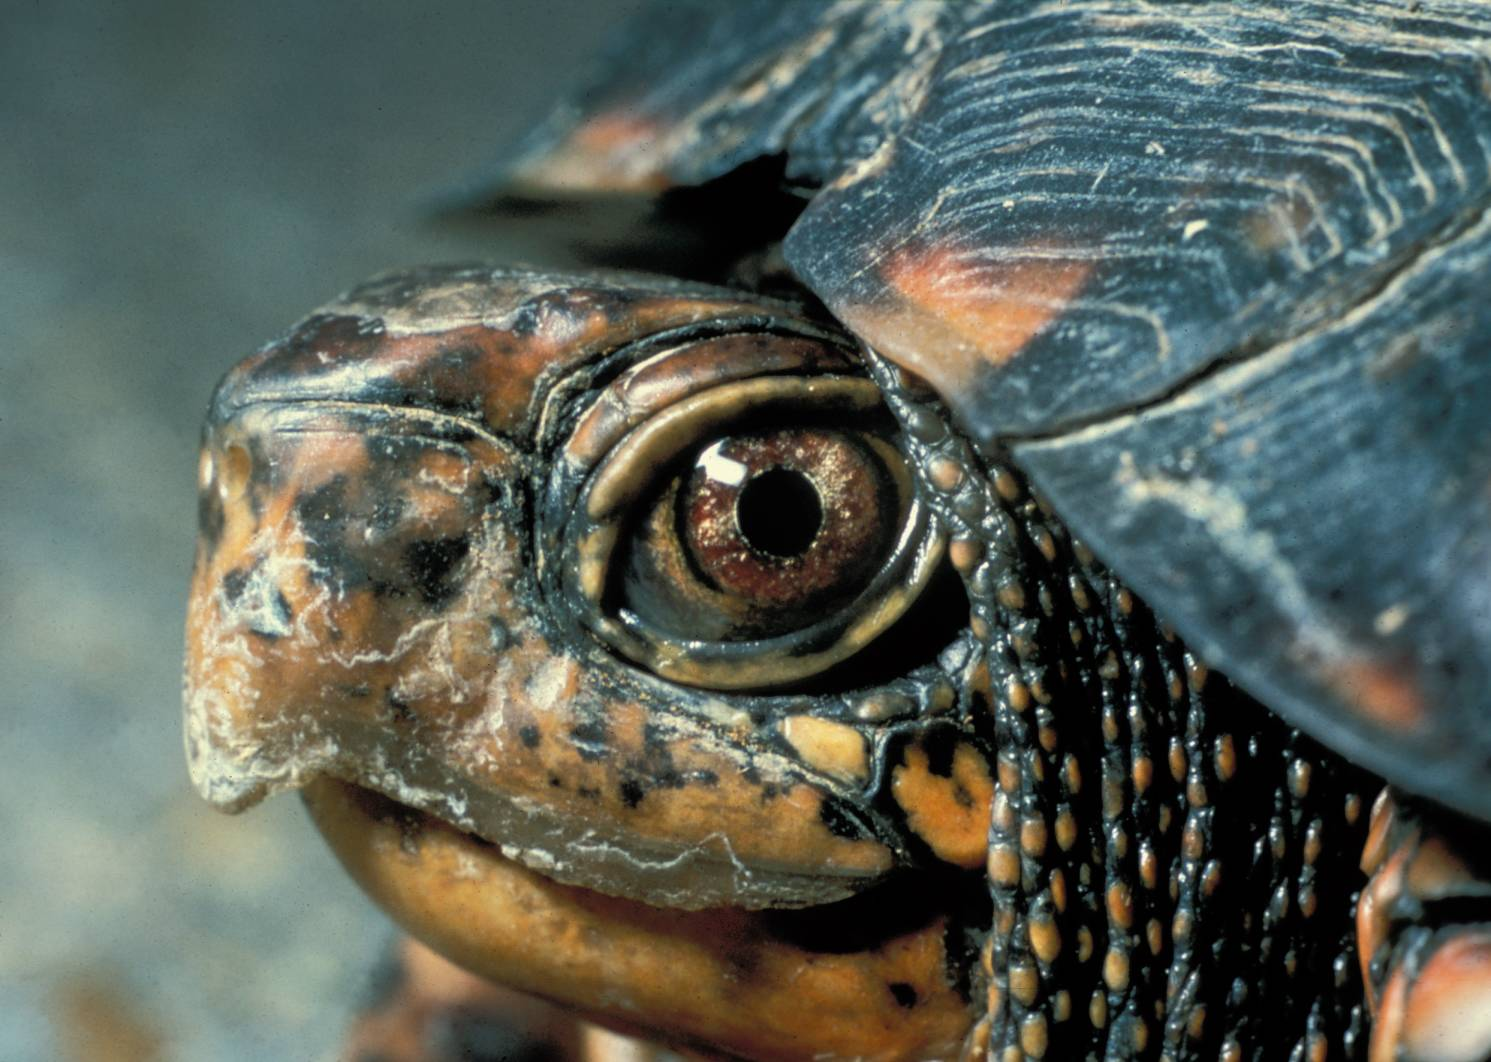 eastern box turtle head